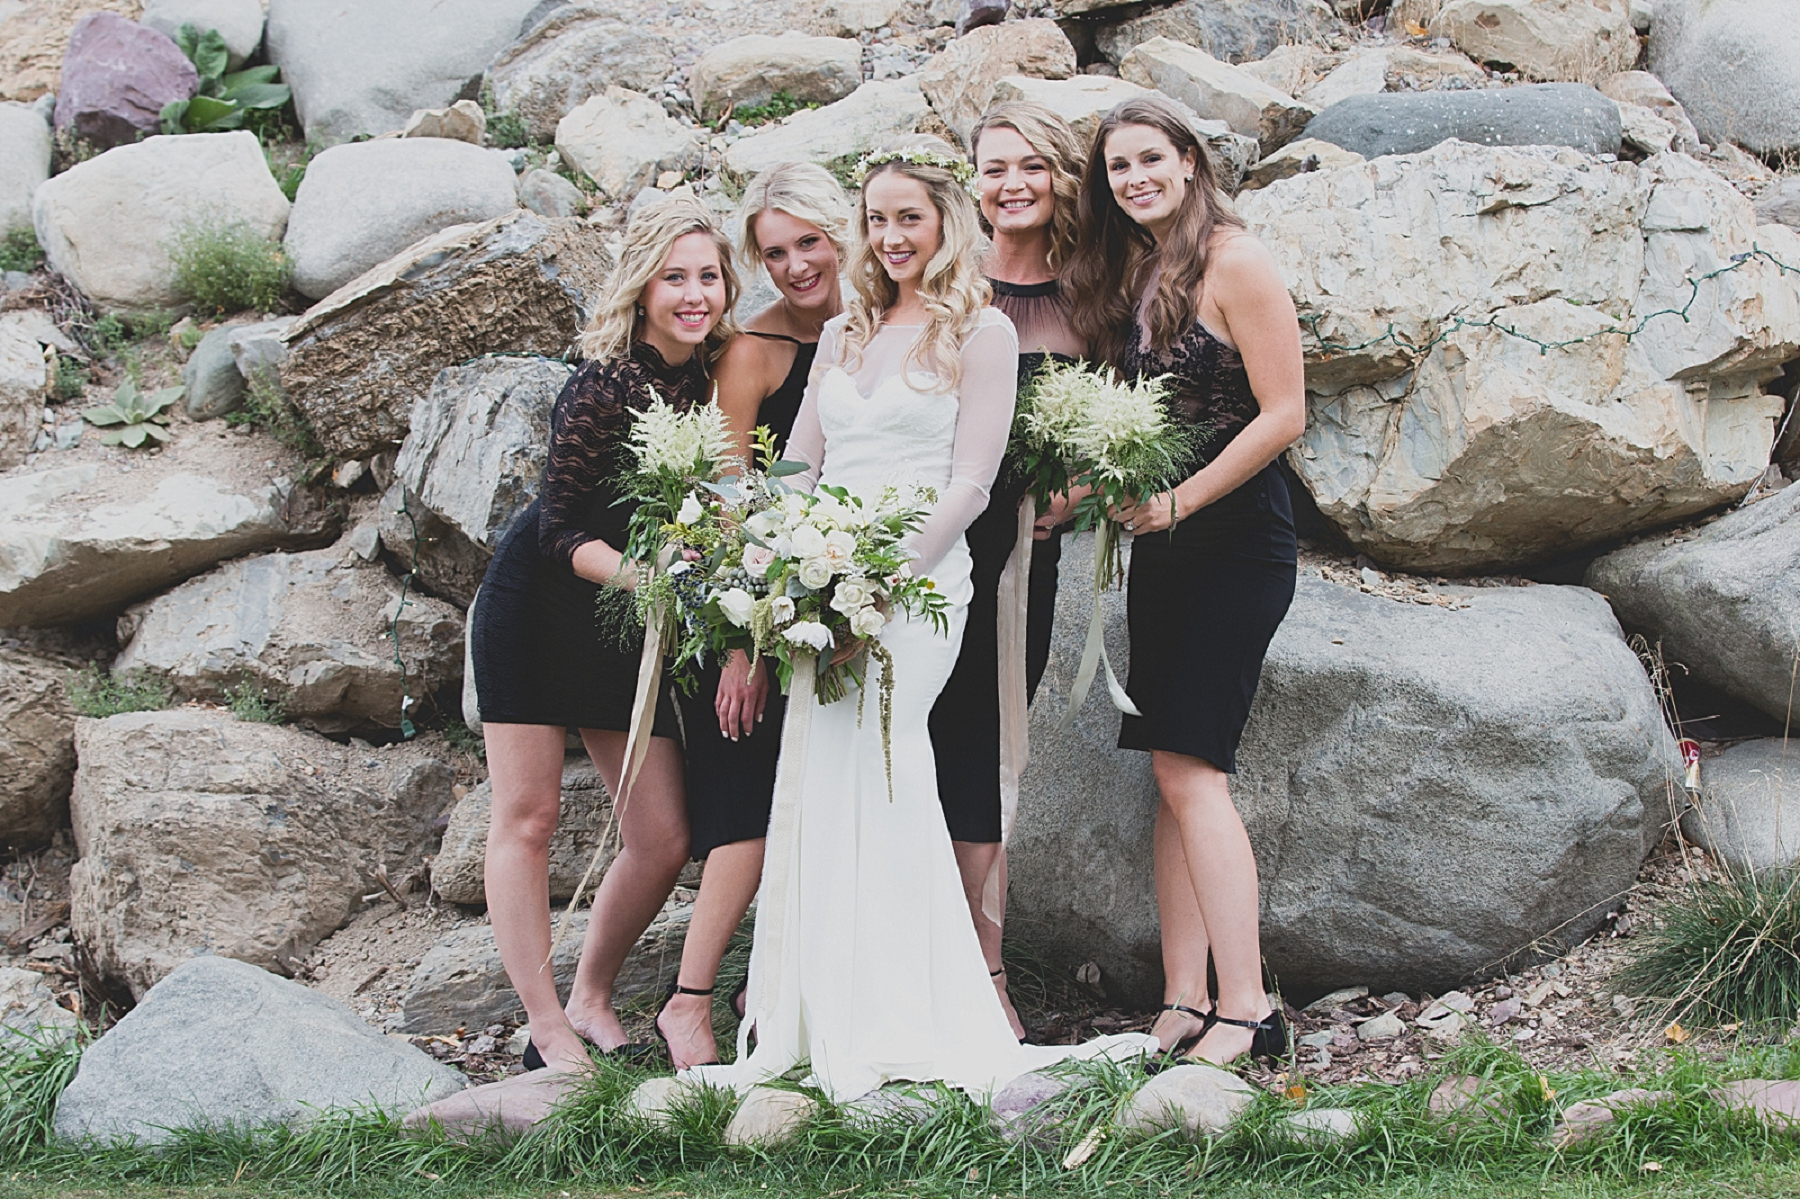 Jennifer_Mooney_Photo_glacier_park_wedding_Beargrass_florals_fall_wedding_elegant_montana_destination_velvet_bride_katie_may_dress_verona_gown_00041.jpg